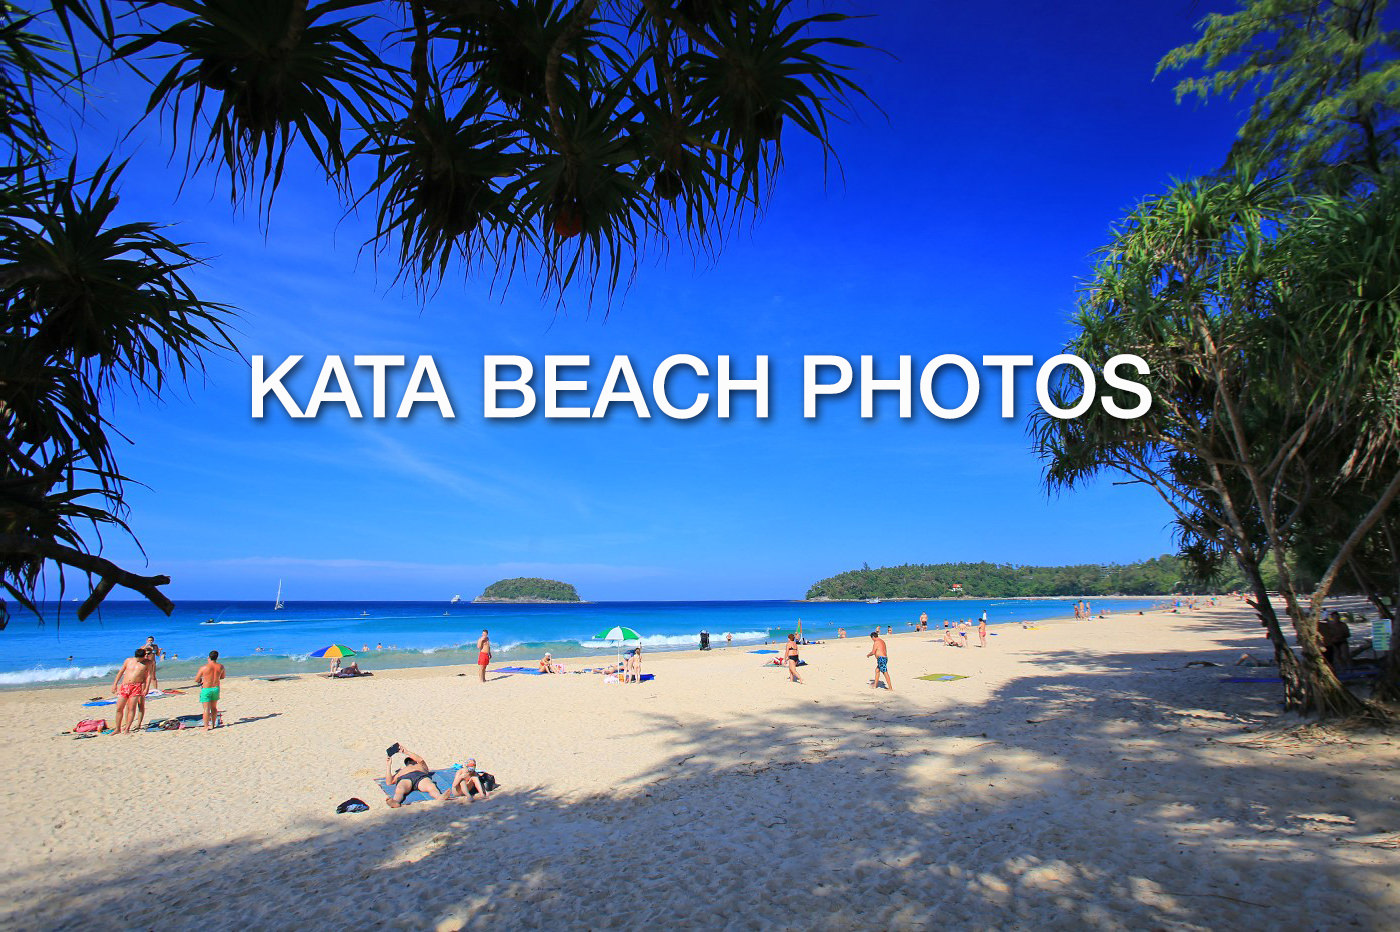 Photos of Kata Beach- Kata Beach Photo Gallery